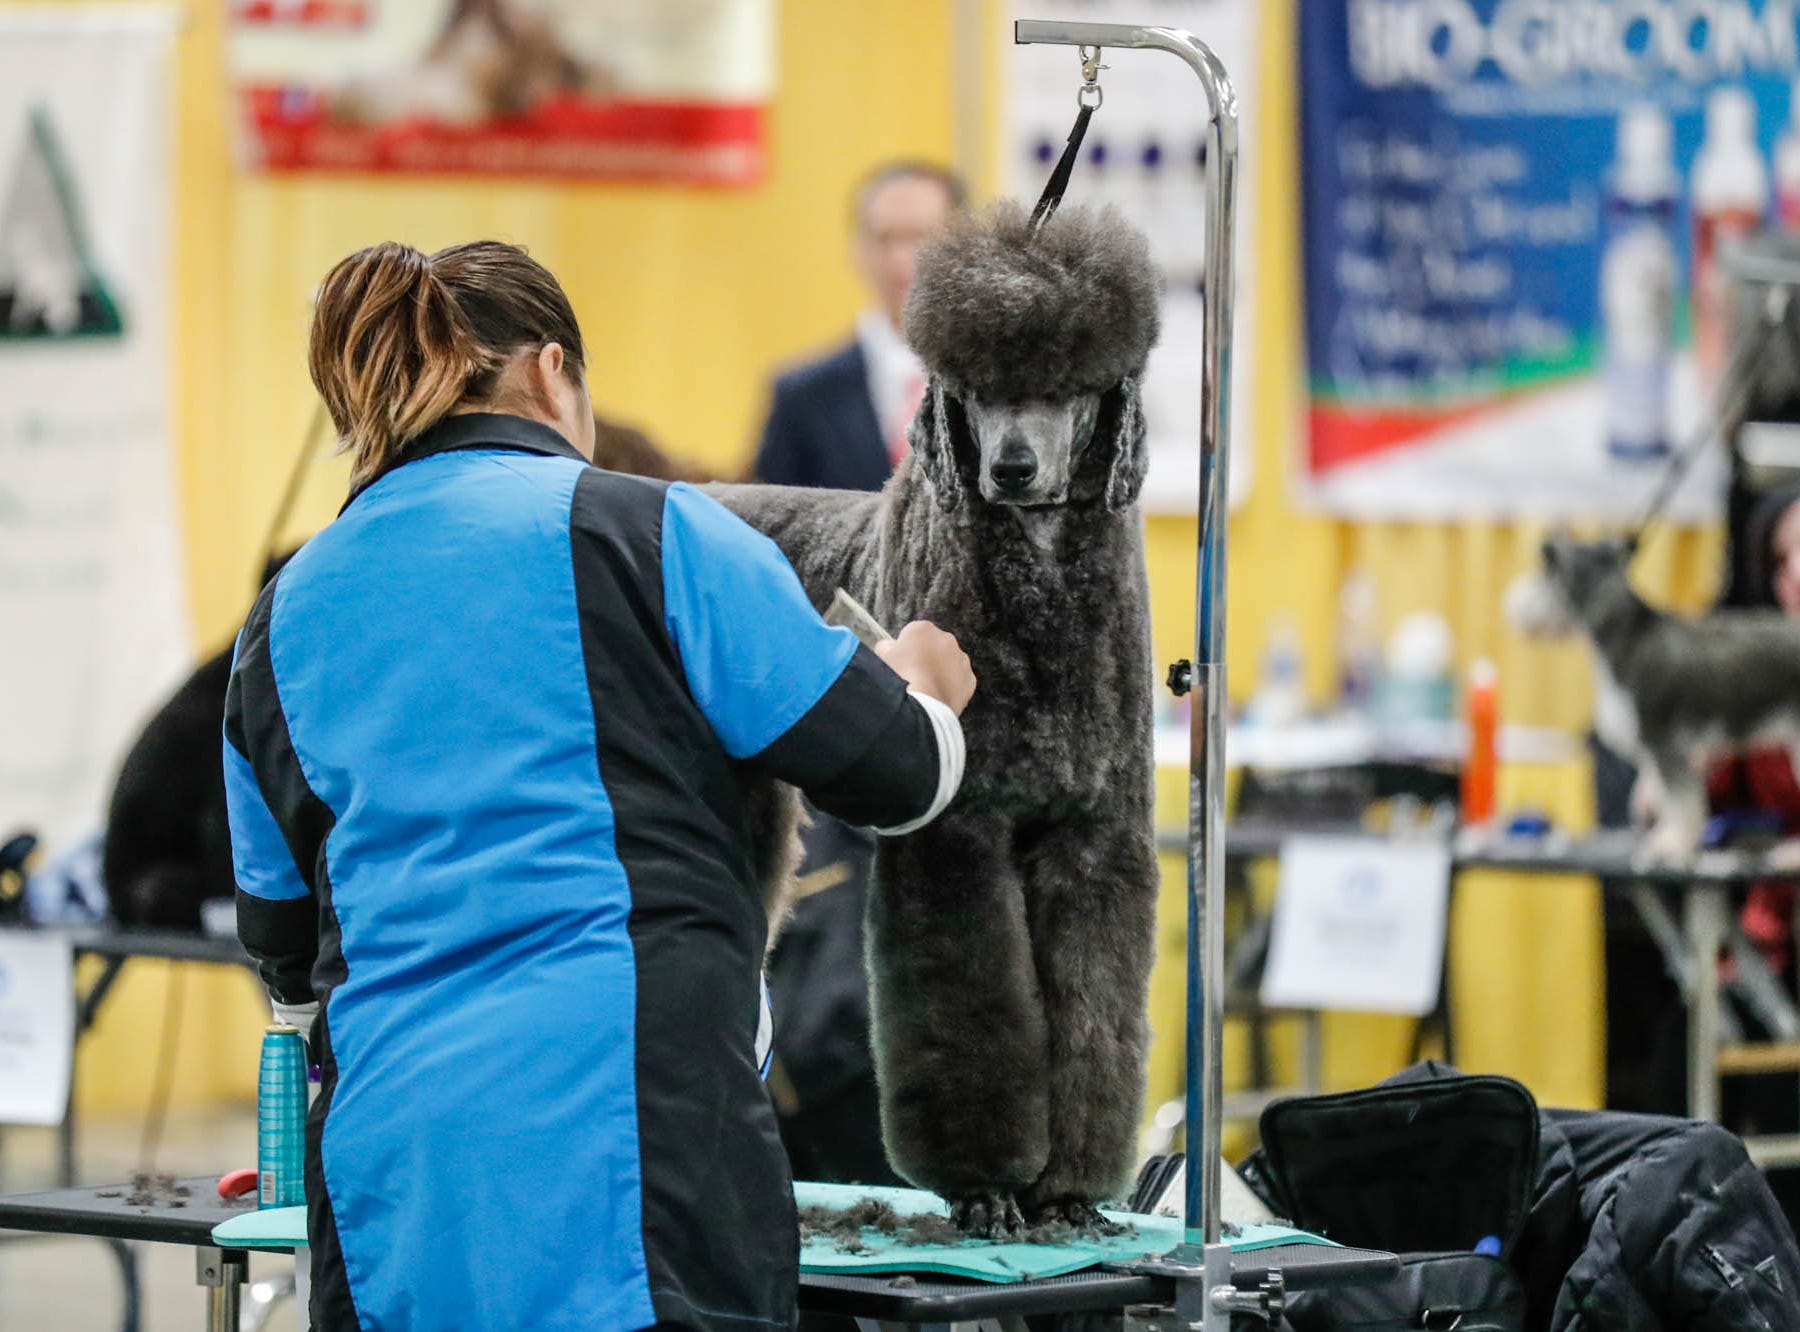 Dogs are groomed during the grooming competition at the Great Indy Pet Expo, held at the Indiana State Fairgrounds on Sat. Nov. 10, 2018.